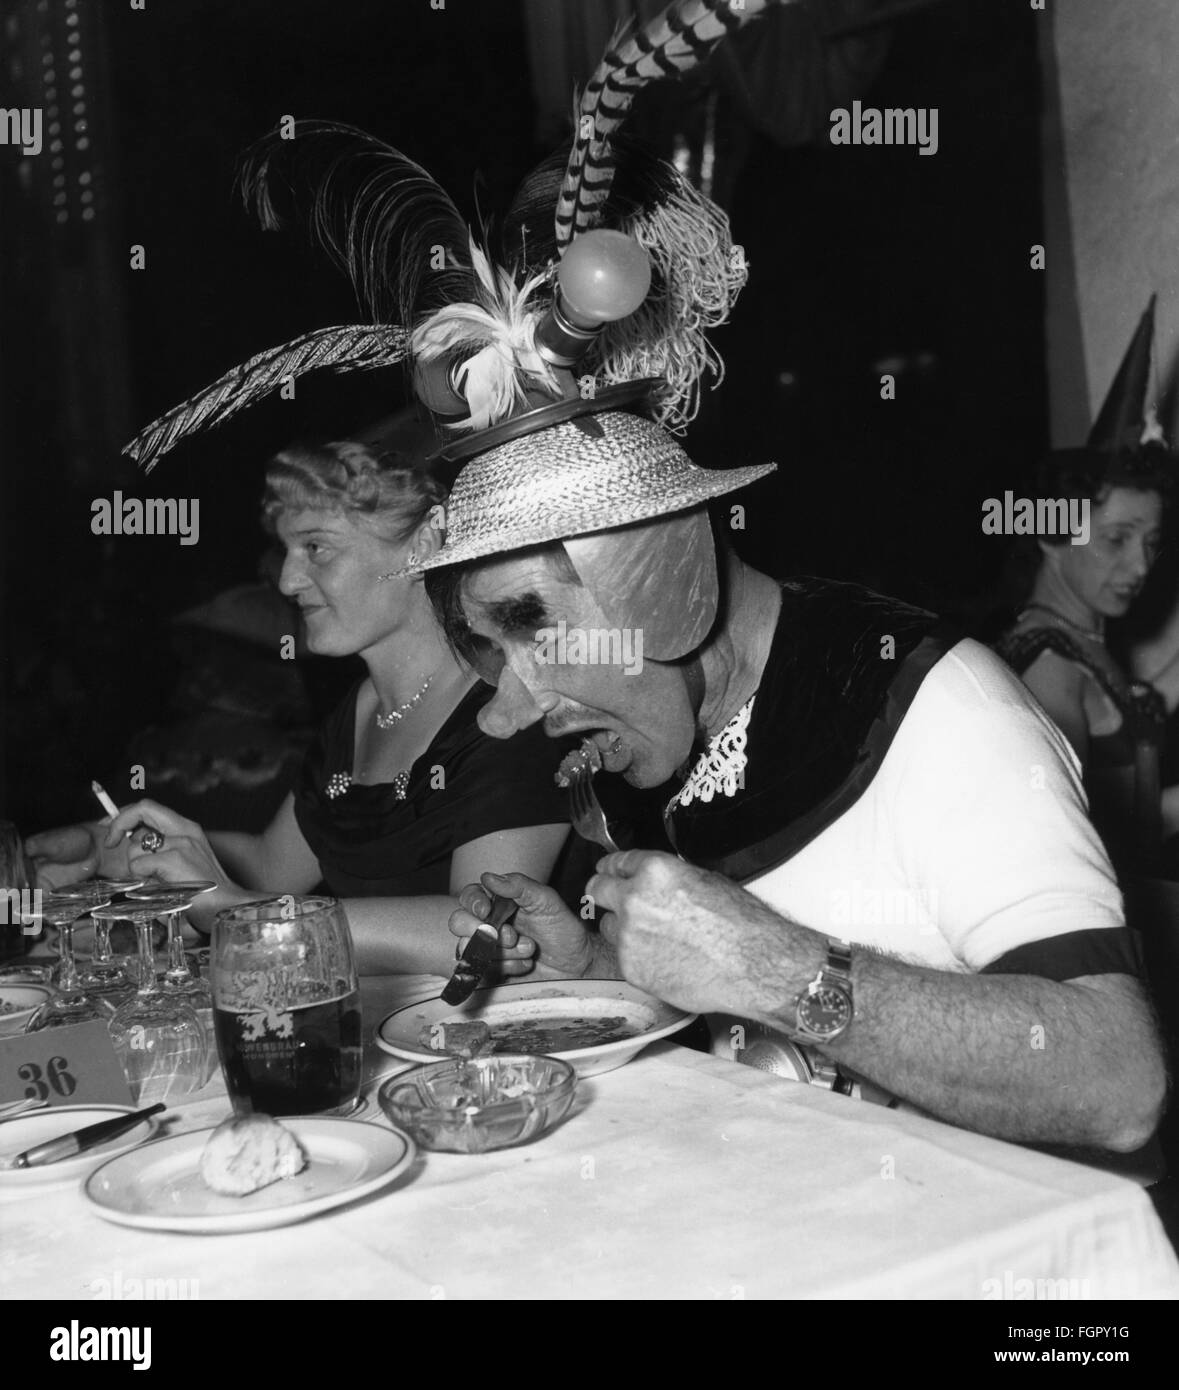 festivities, carnival, feast of the 'Damische Ritter' corporation, man with feather hat eating, Löwenbräukeller, - Stock Image